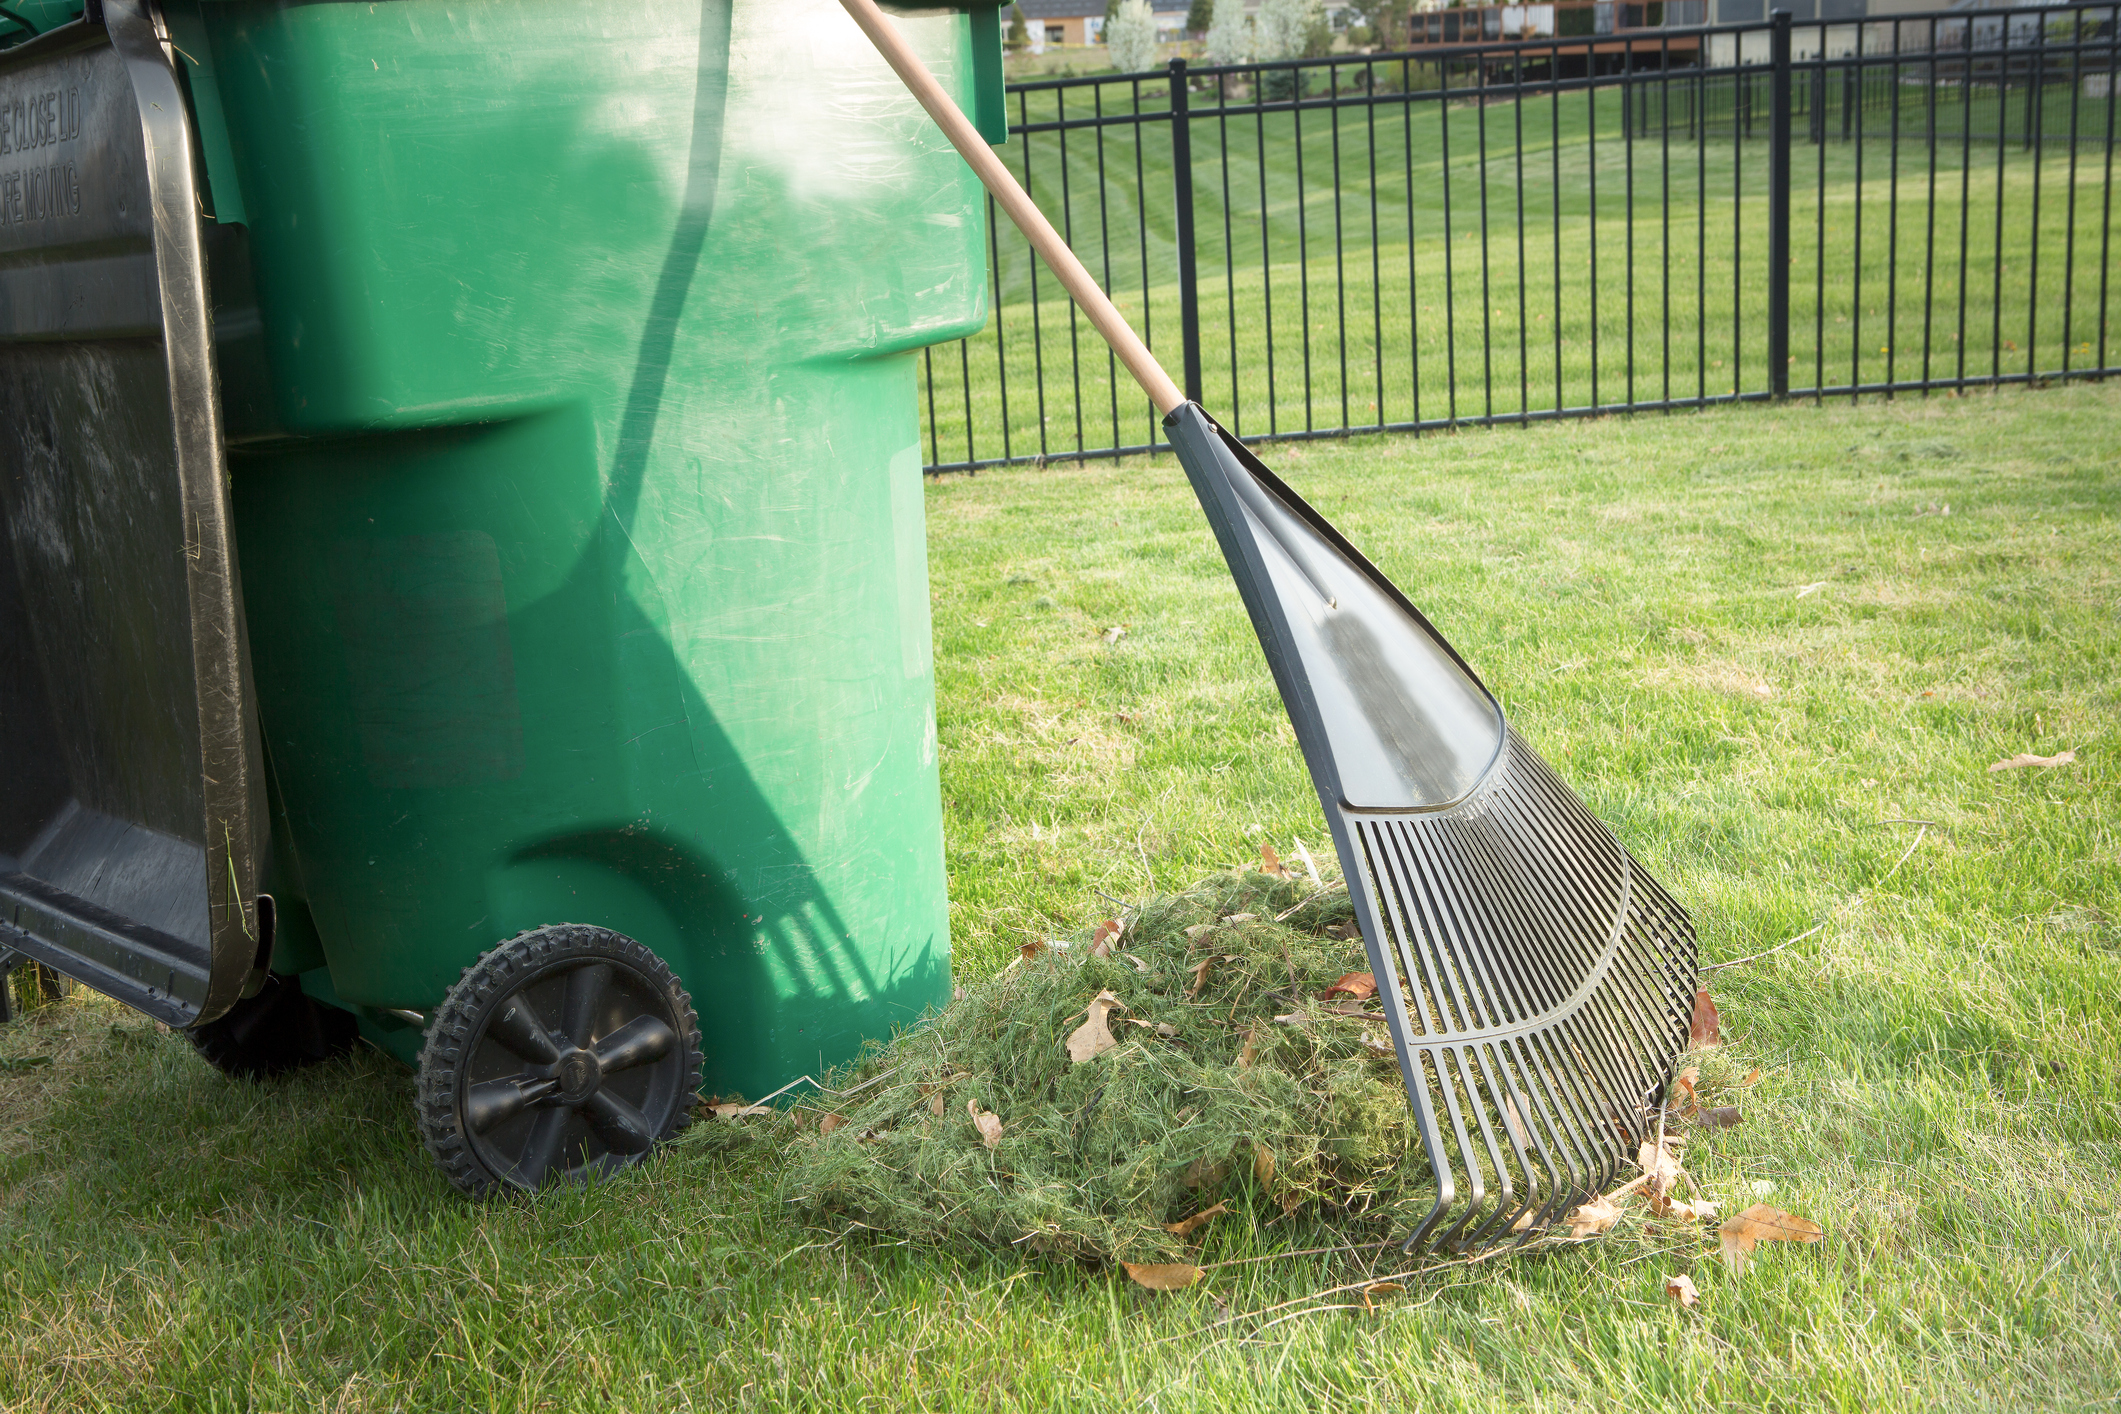 Property Cleanup Service in Florida